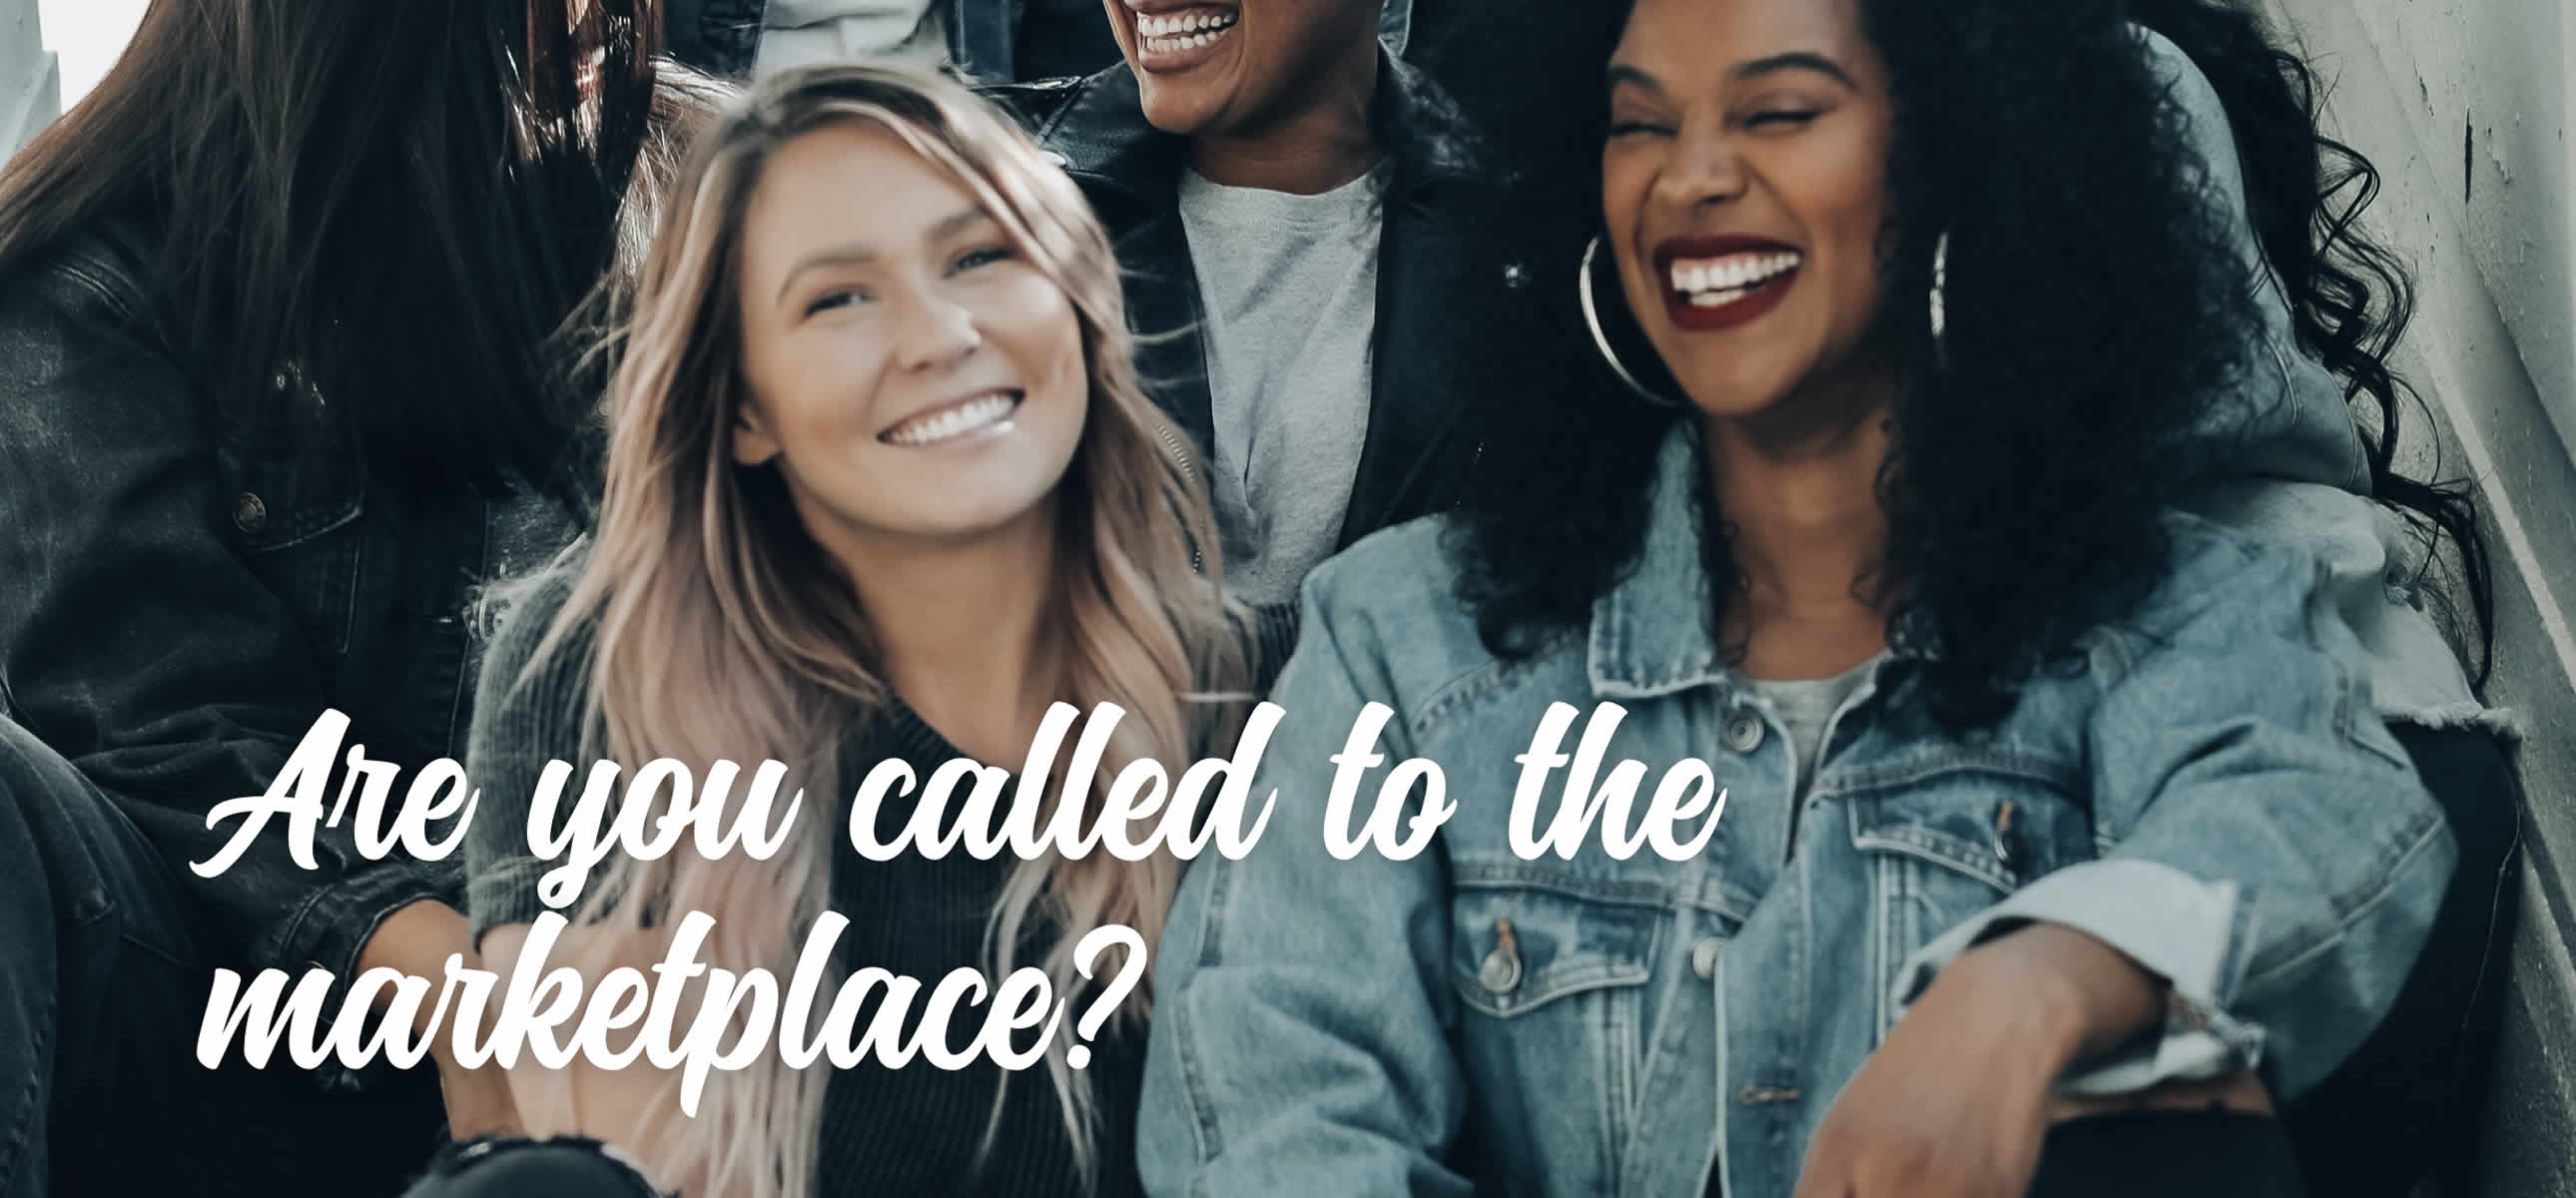 Are you called to the marketplace?